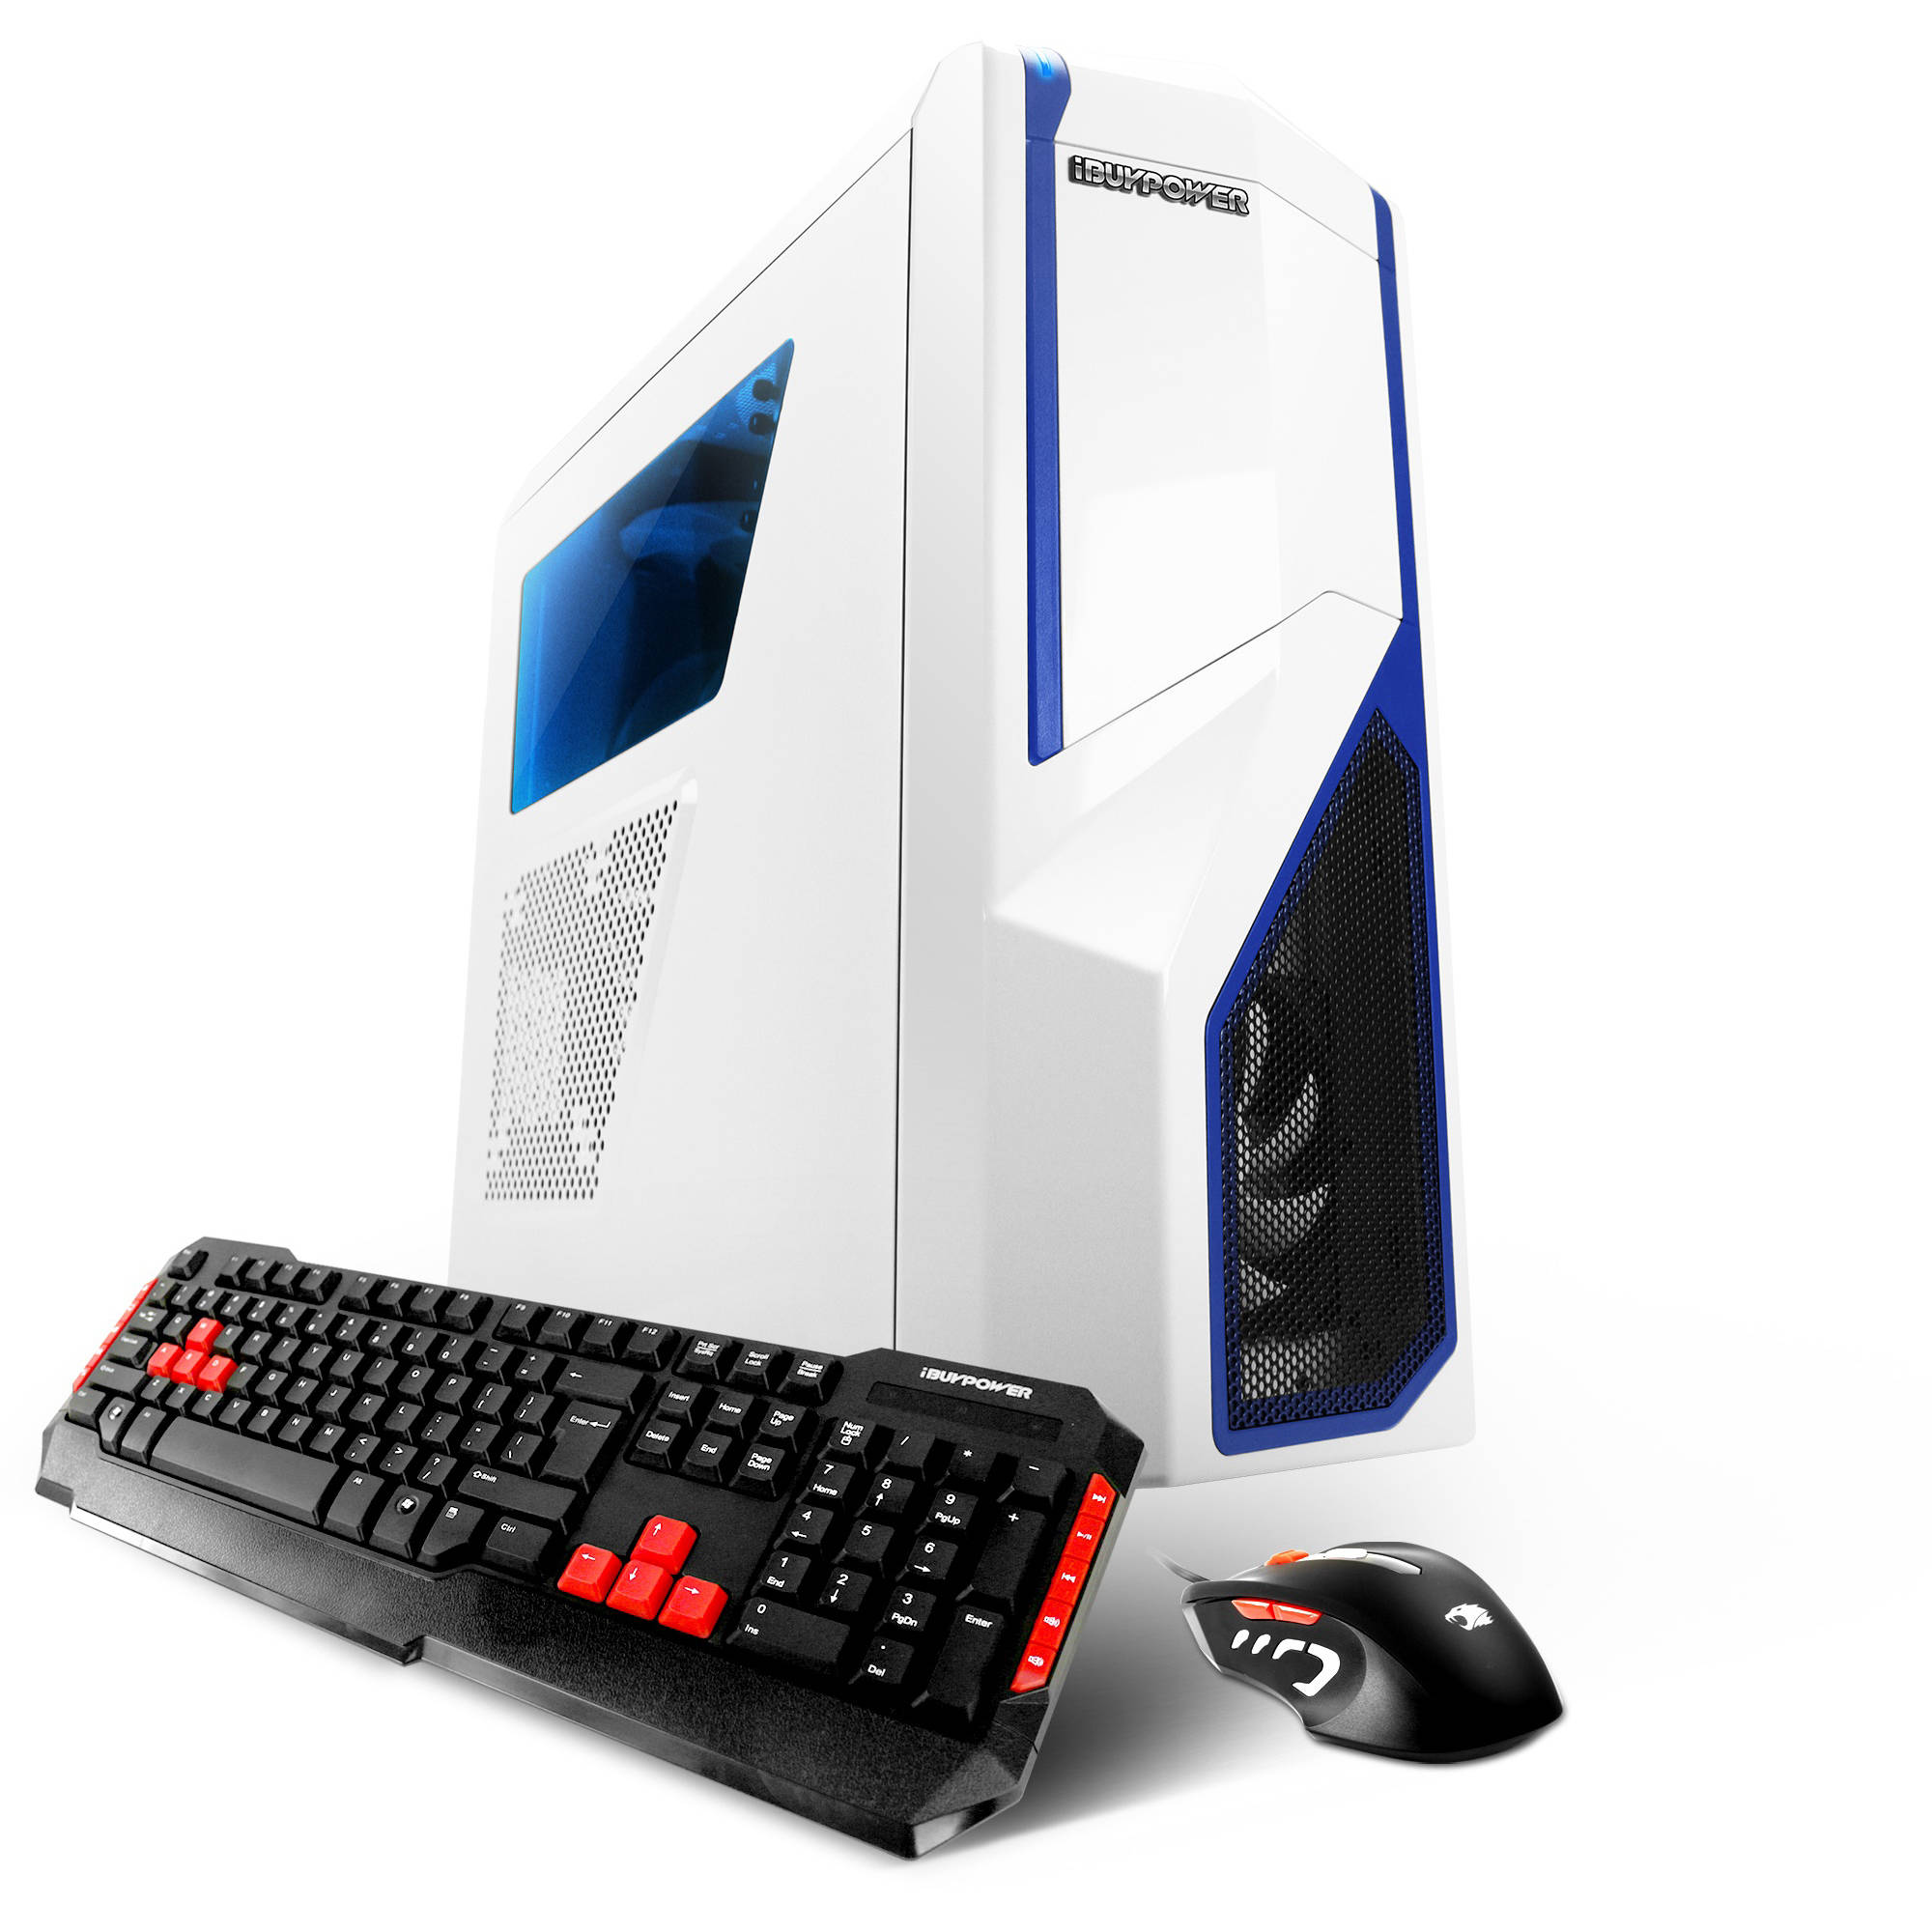 iBuyPower Gamer WA-W960 Desktop PC with Intel Core i7-6700K Processor, 16GB Memory, 1TB Hard Drive and Windows 10 Home (Monitor Not Included)